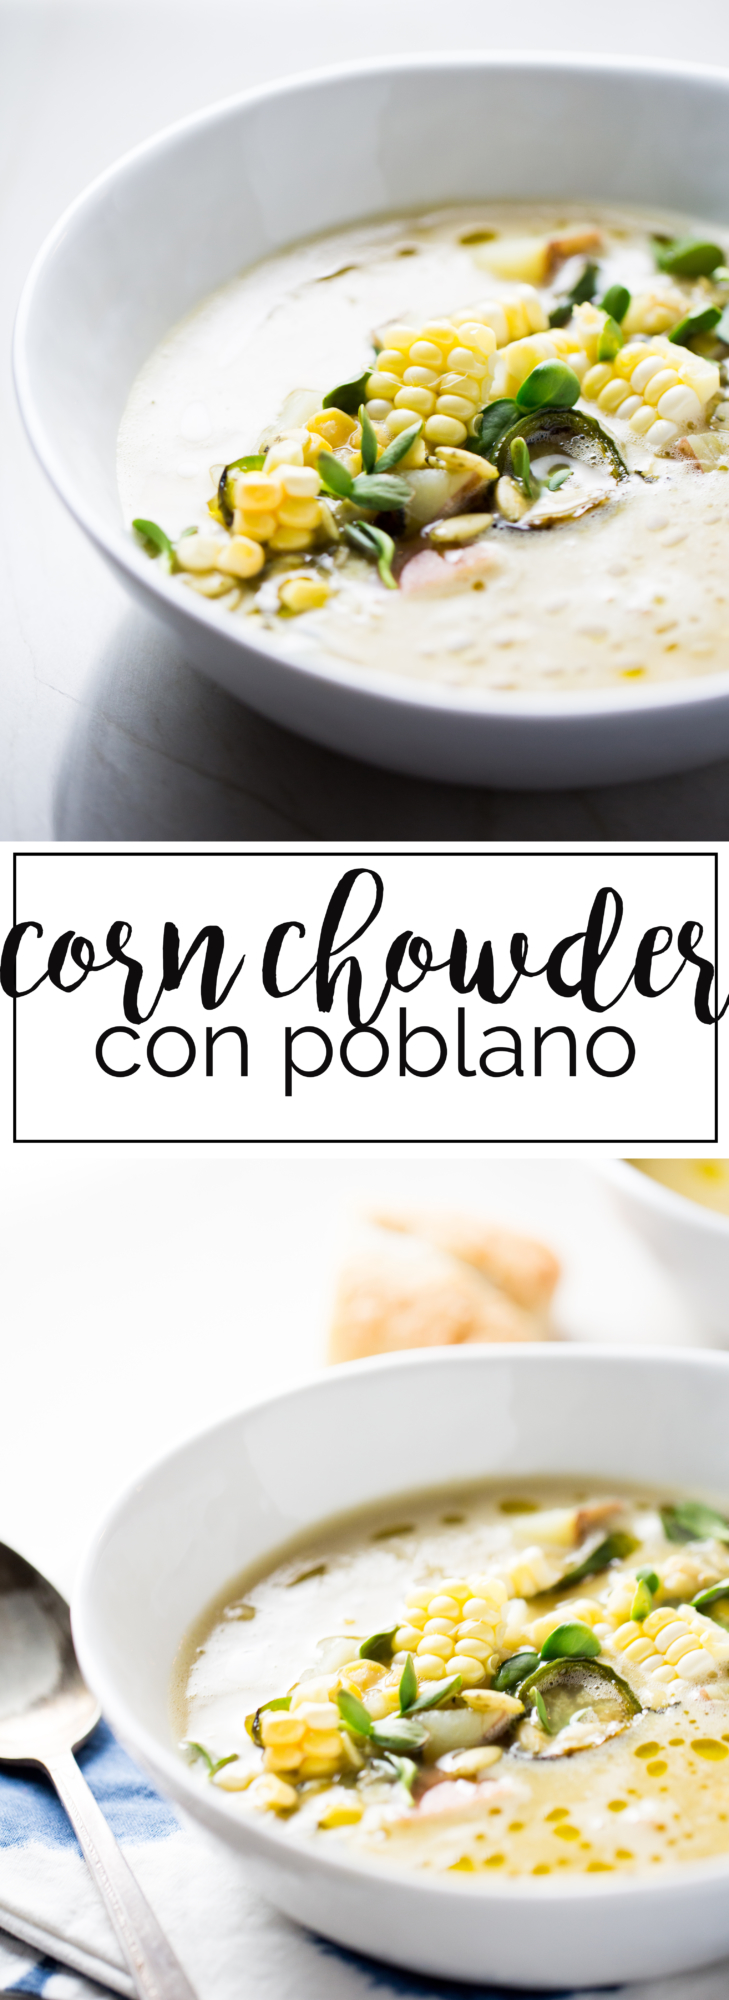 Receta vegana de corn chowder super saludables y con un toque mexicano.